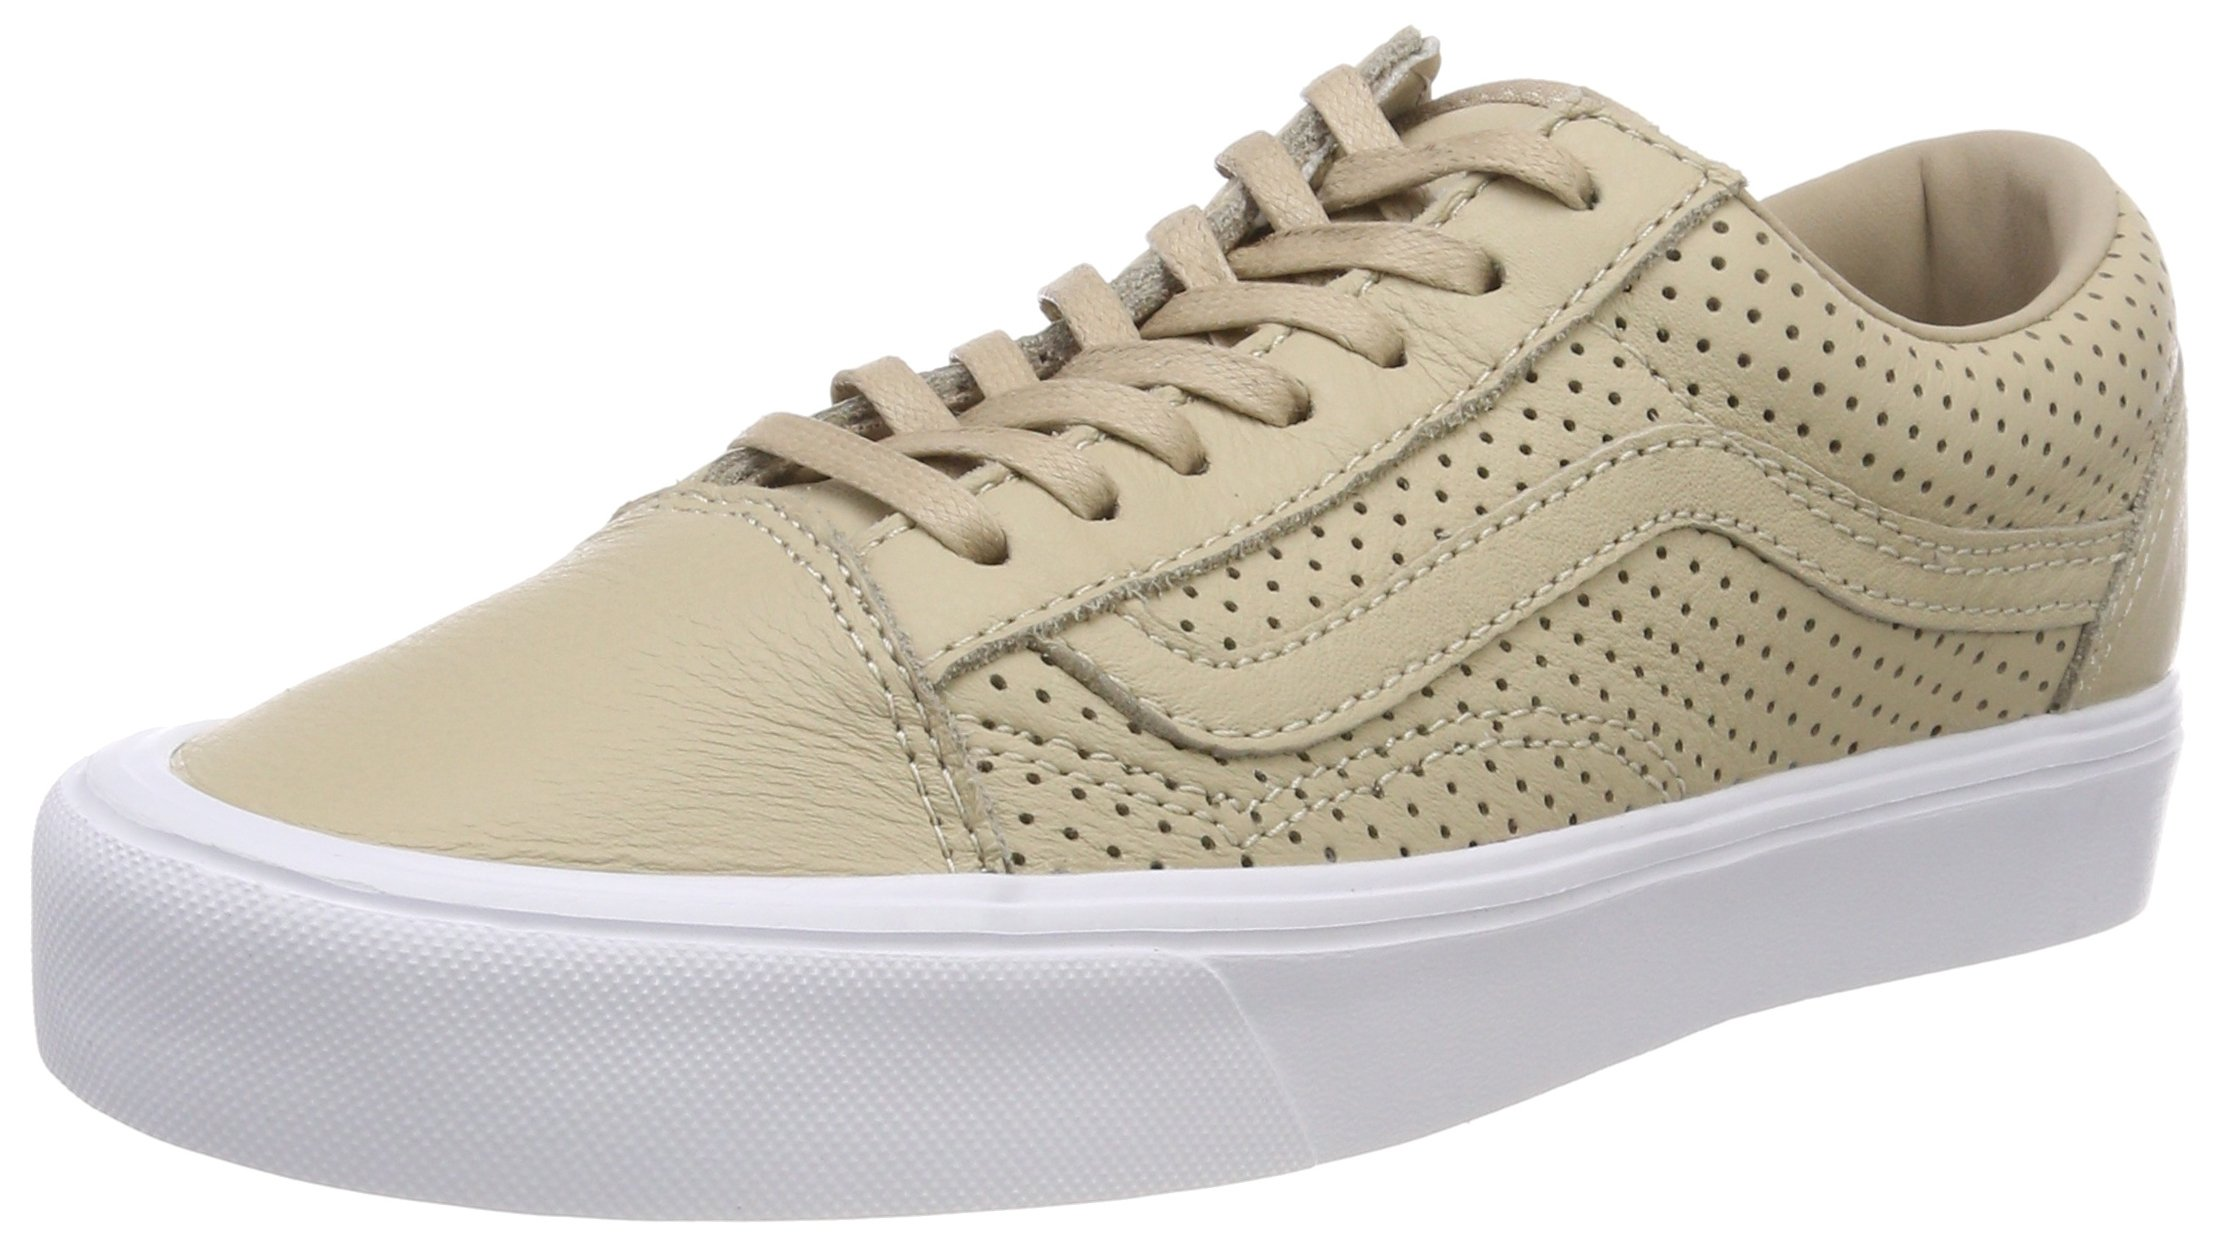 Vans Unisex Adults' Old Skool Lite Trainers - 81vq99exXaL - Vans Unisex Adults' Old Skool Lite Trainers